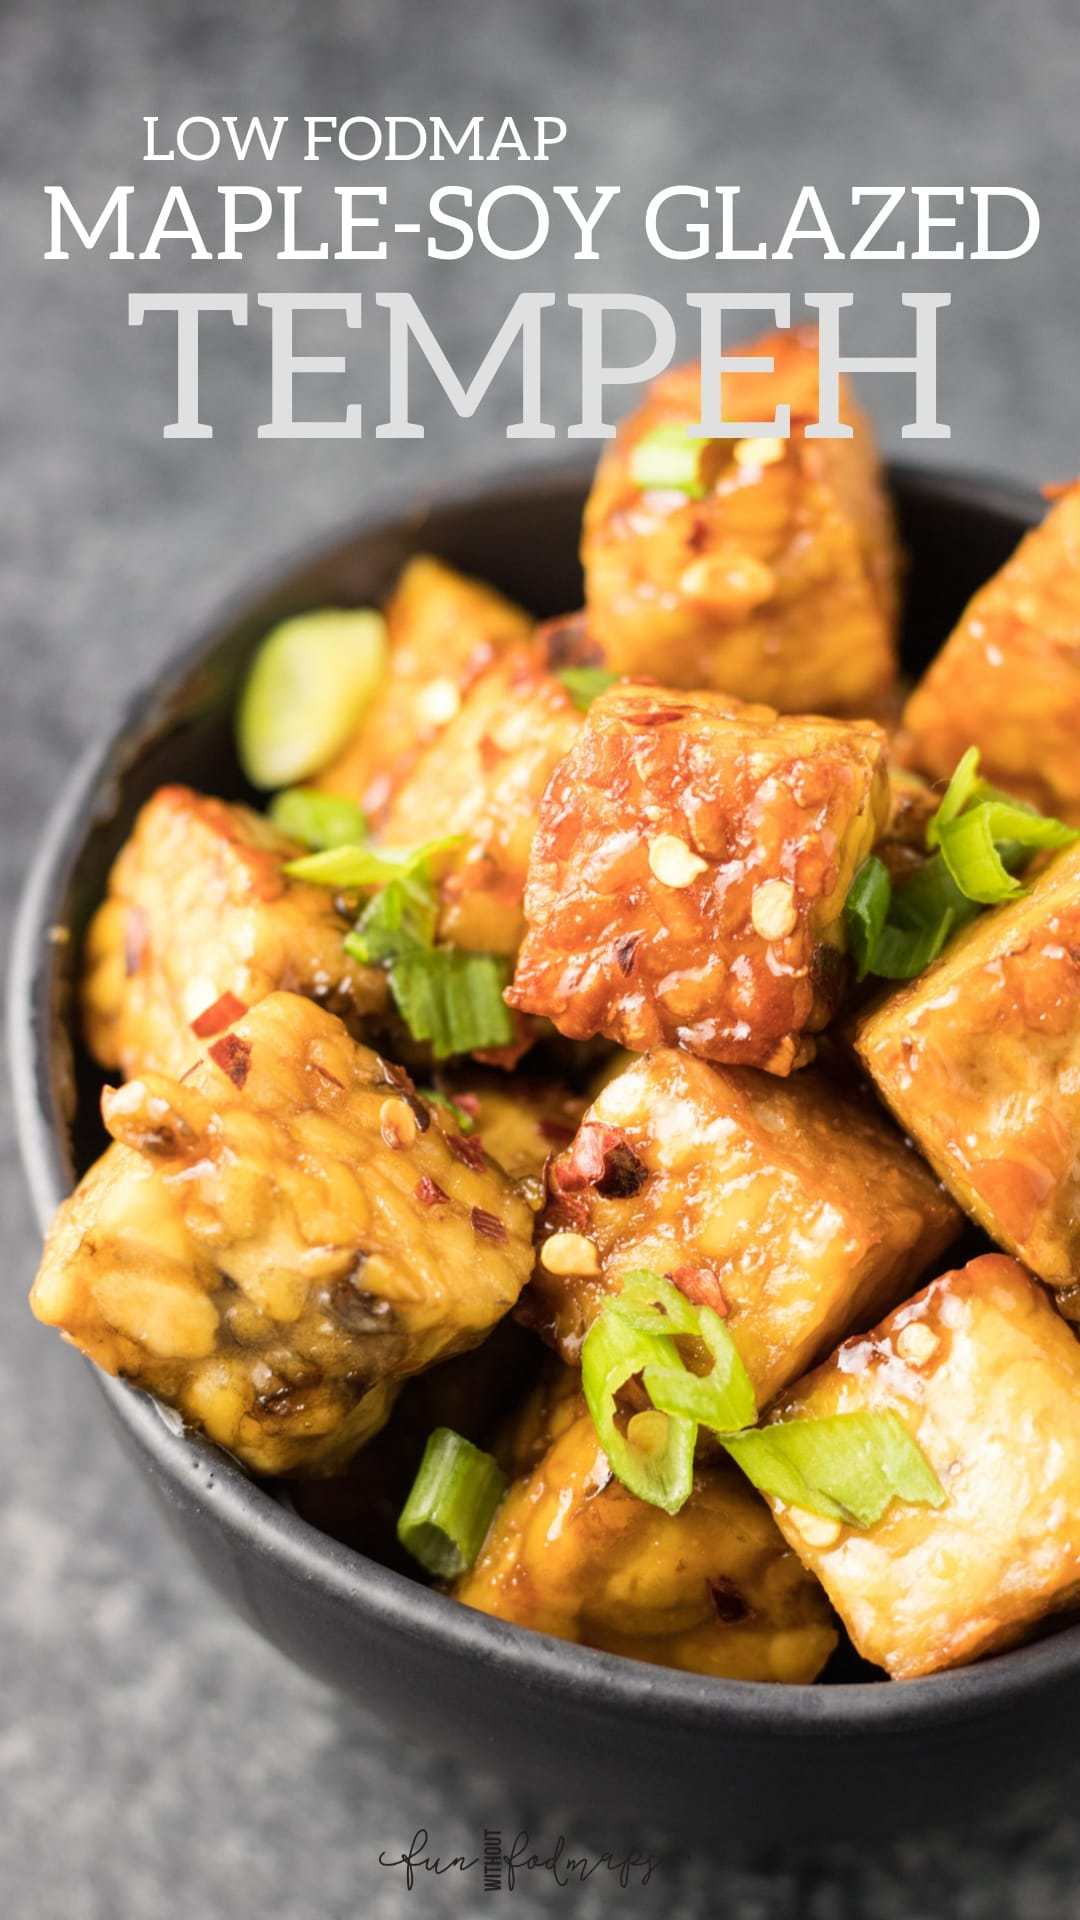 A bowl of pan-fried tempeh tossed in a maple-soy glaze. A white and gray text overlay reads Low FODMAP Maple-Soy Glazed Temeph